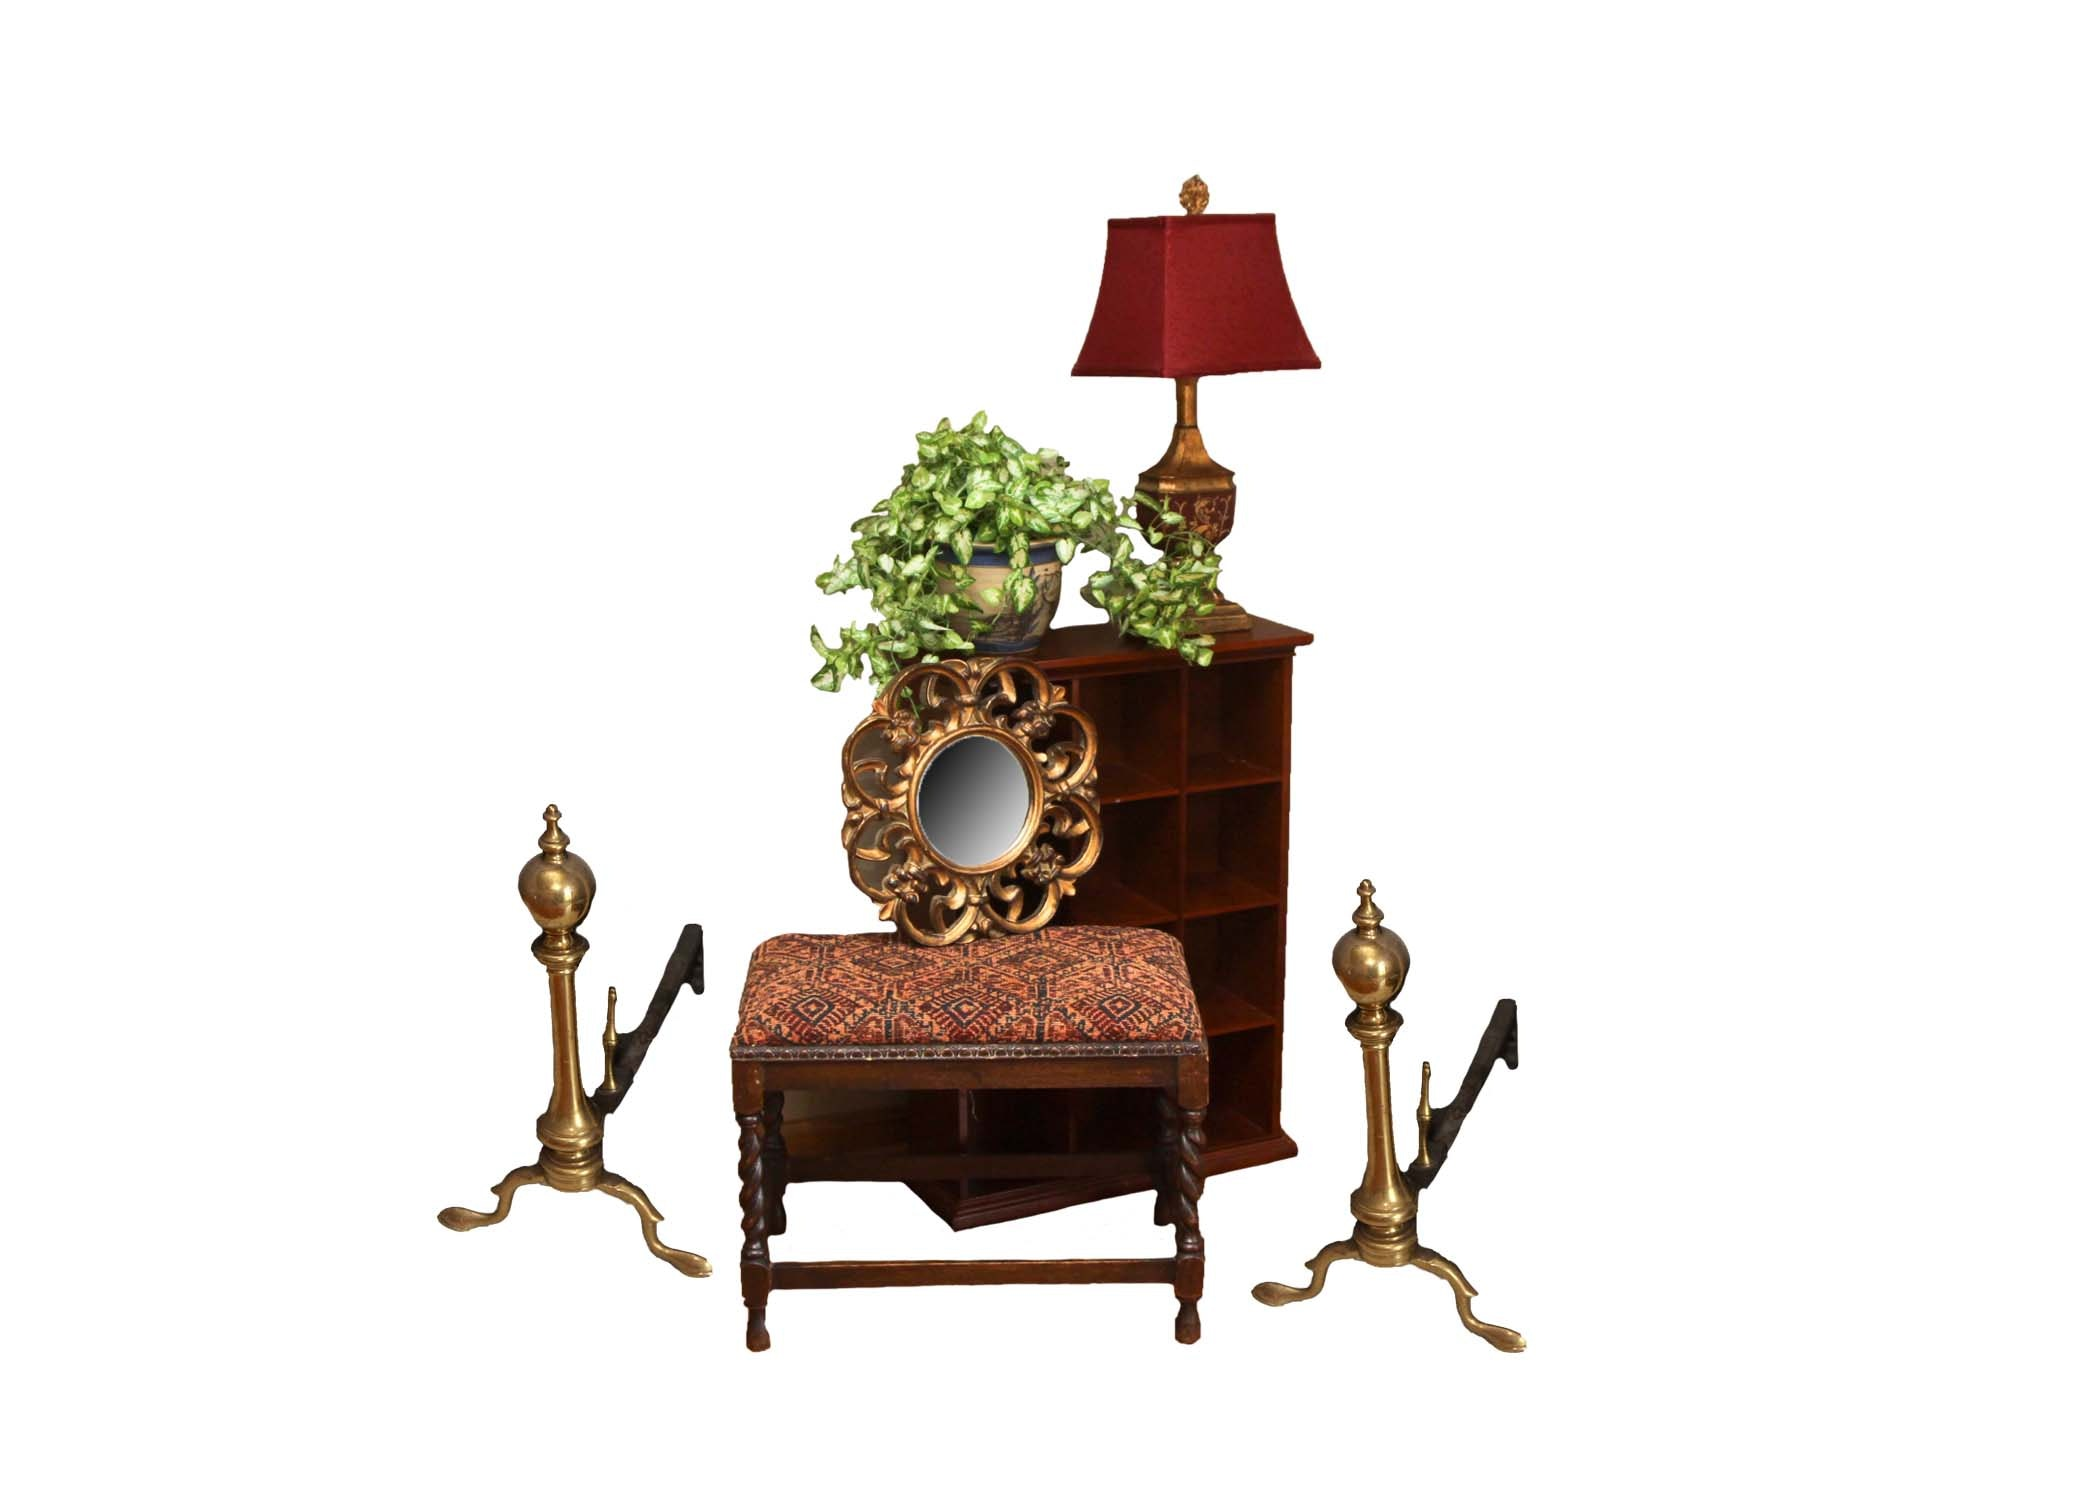 Furniture & Home Decor Selection